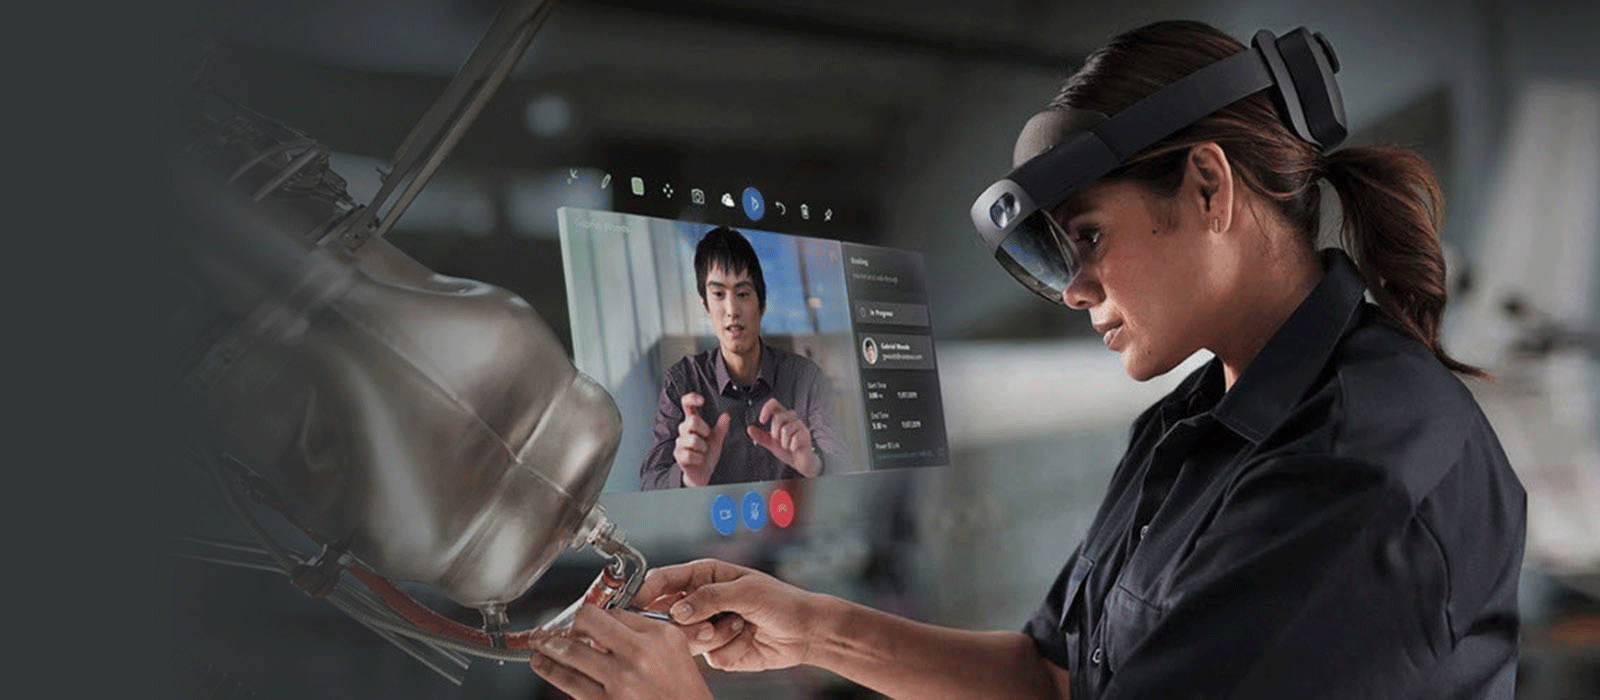 A woman is wearing the HoloLens 2 on her head and looks down